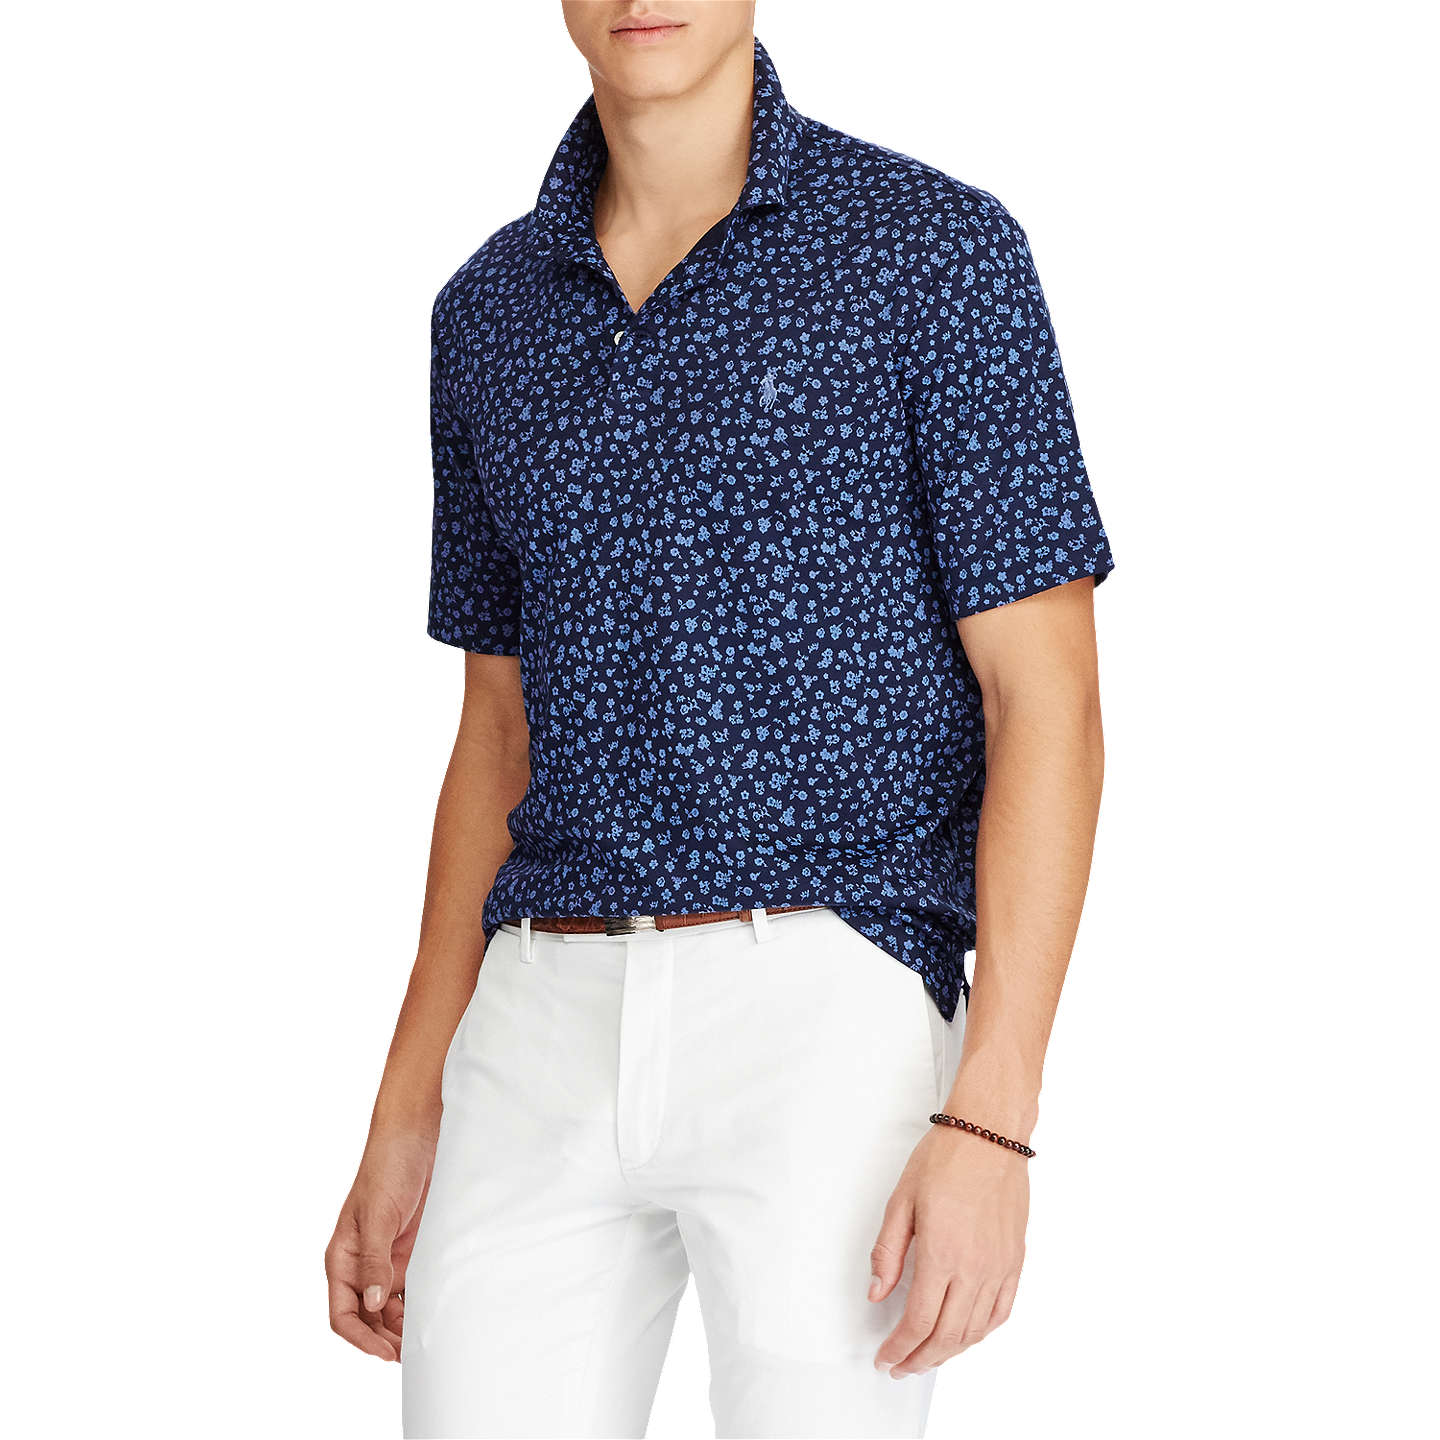 BuyPolo Ralph Lauren Pima Cotton Slim Fit Polo Shirt, Tossed Navy Floral, S  Online ...